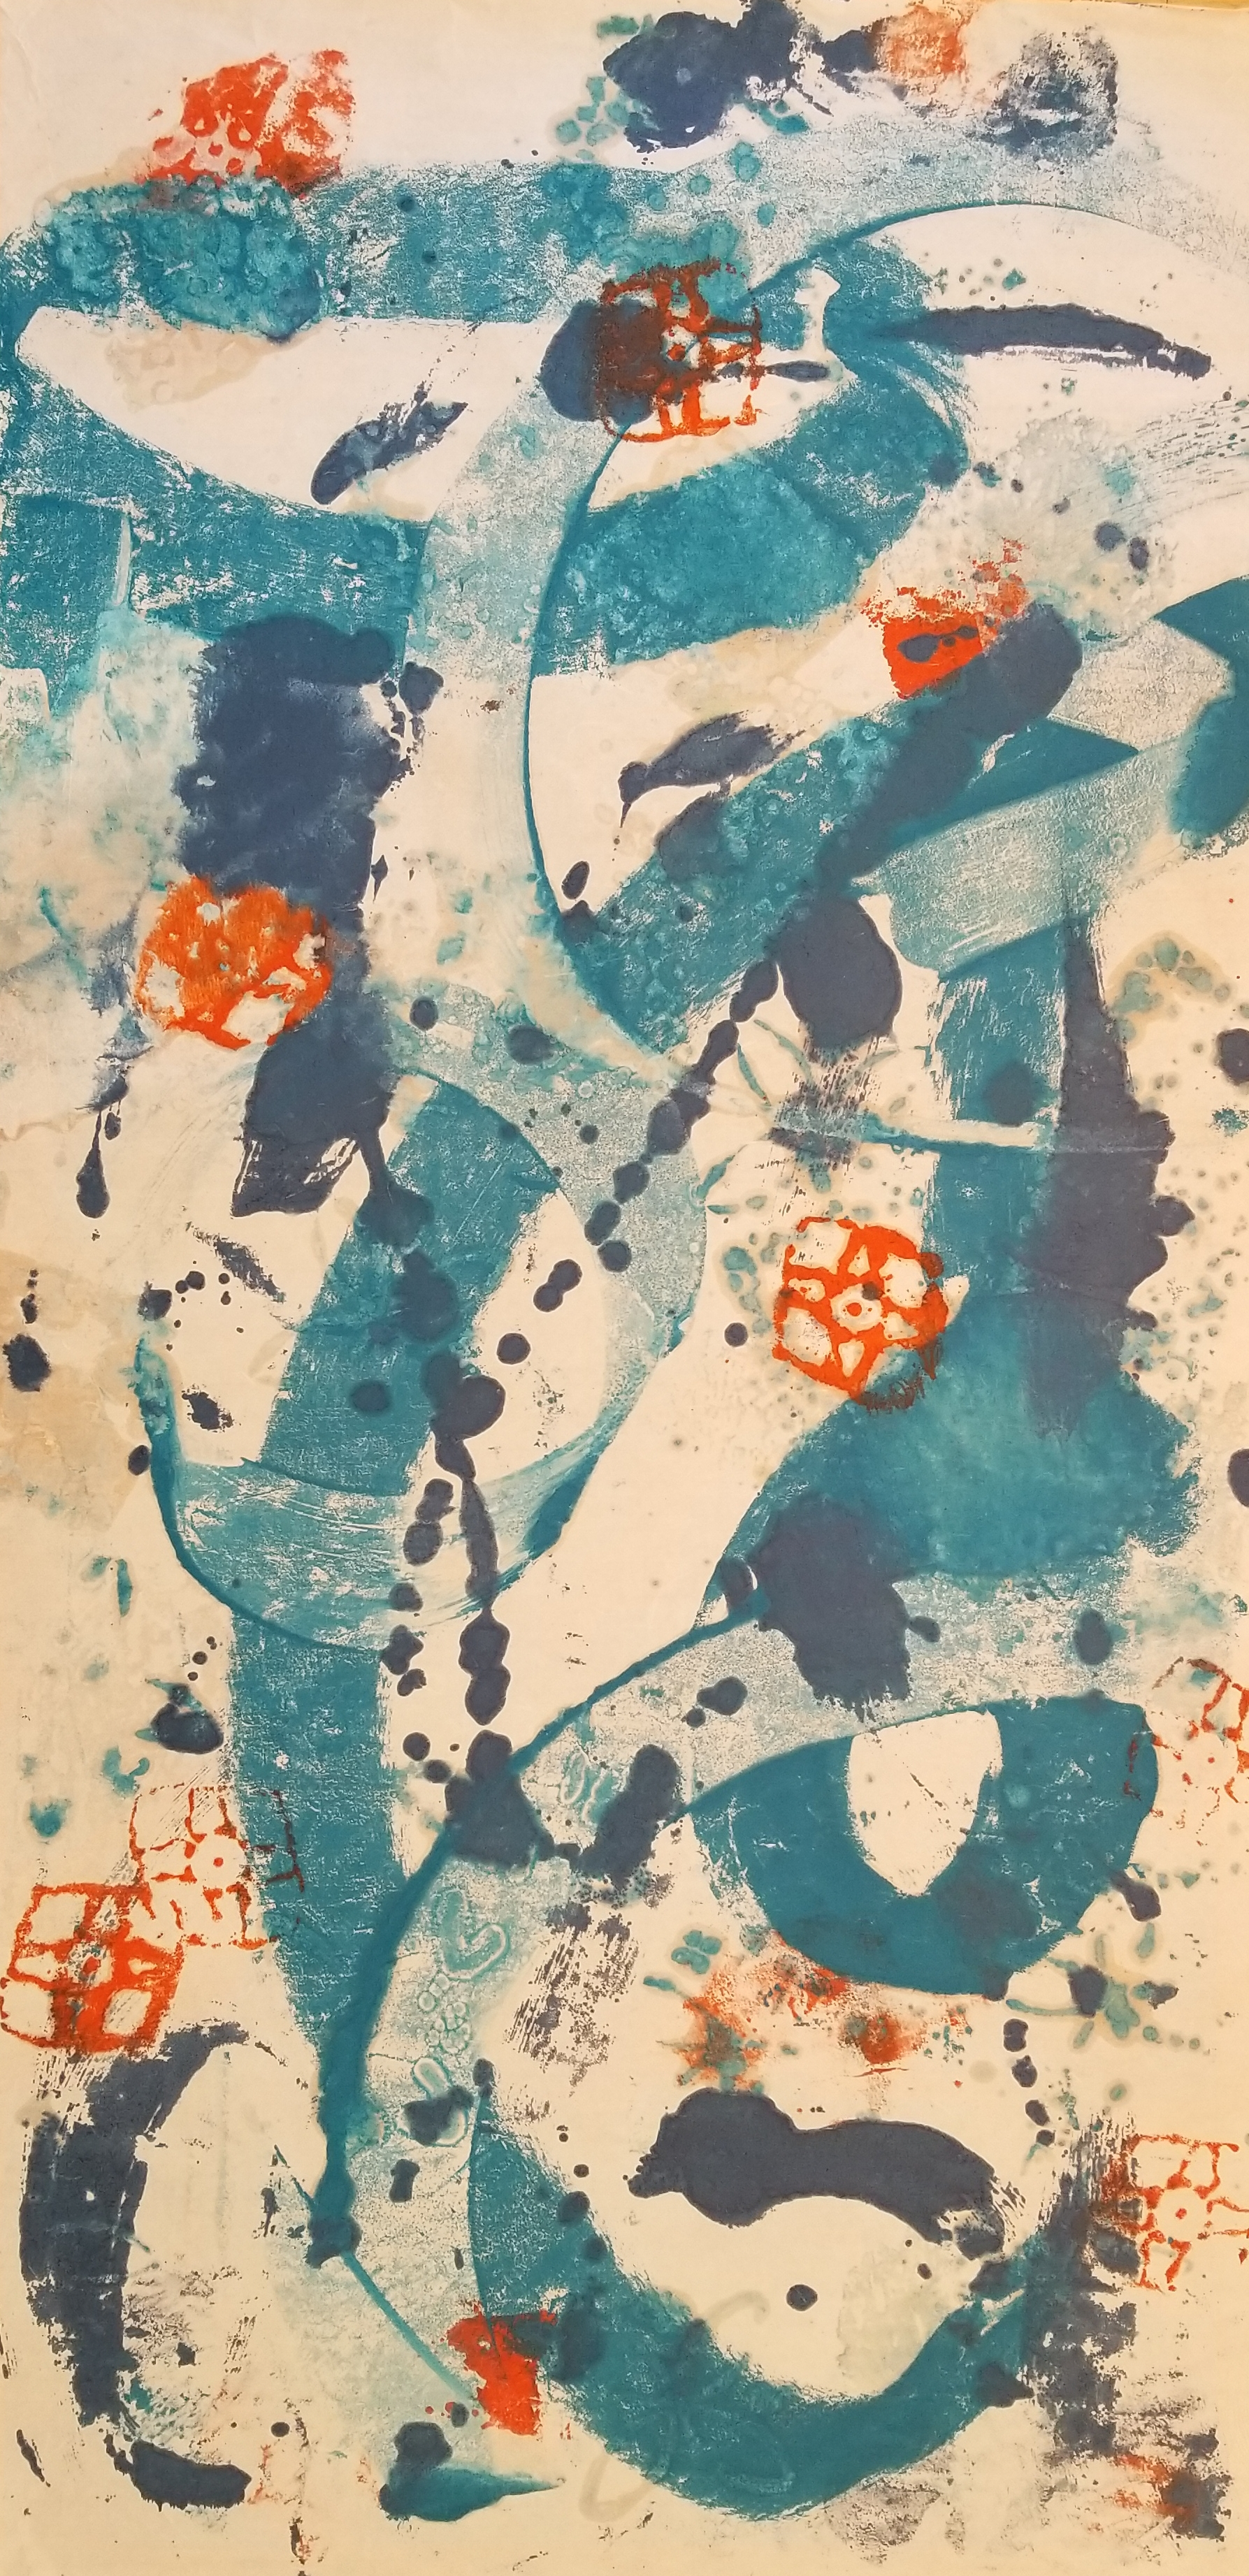 Trust The Tao, Encaustic Wax Monotype, 55 x 27